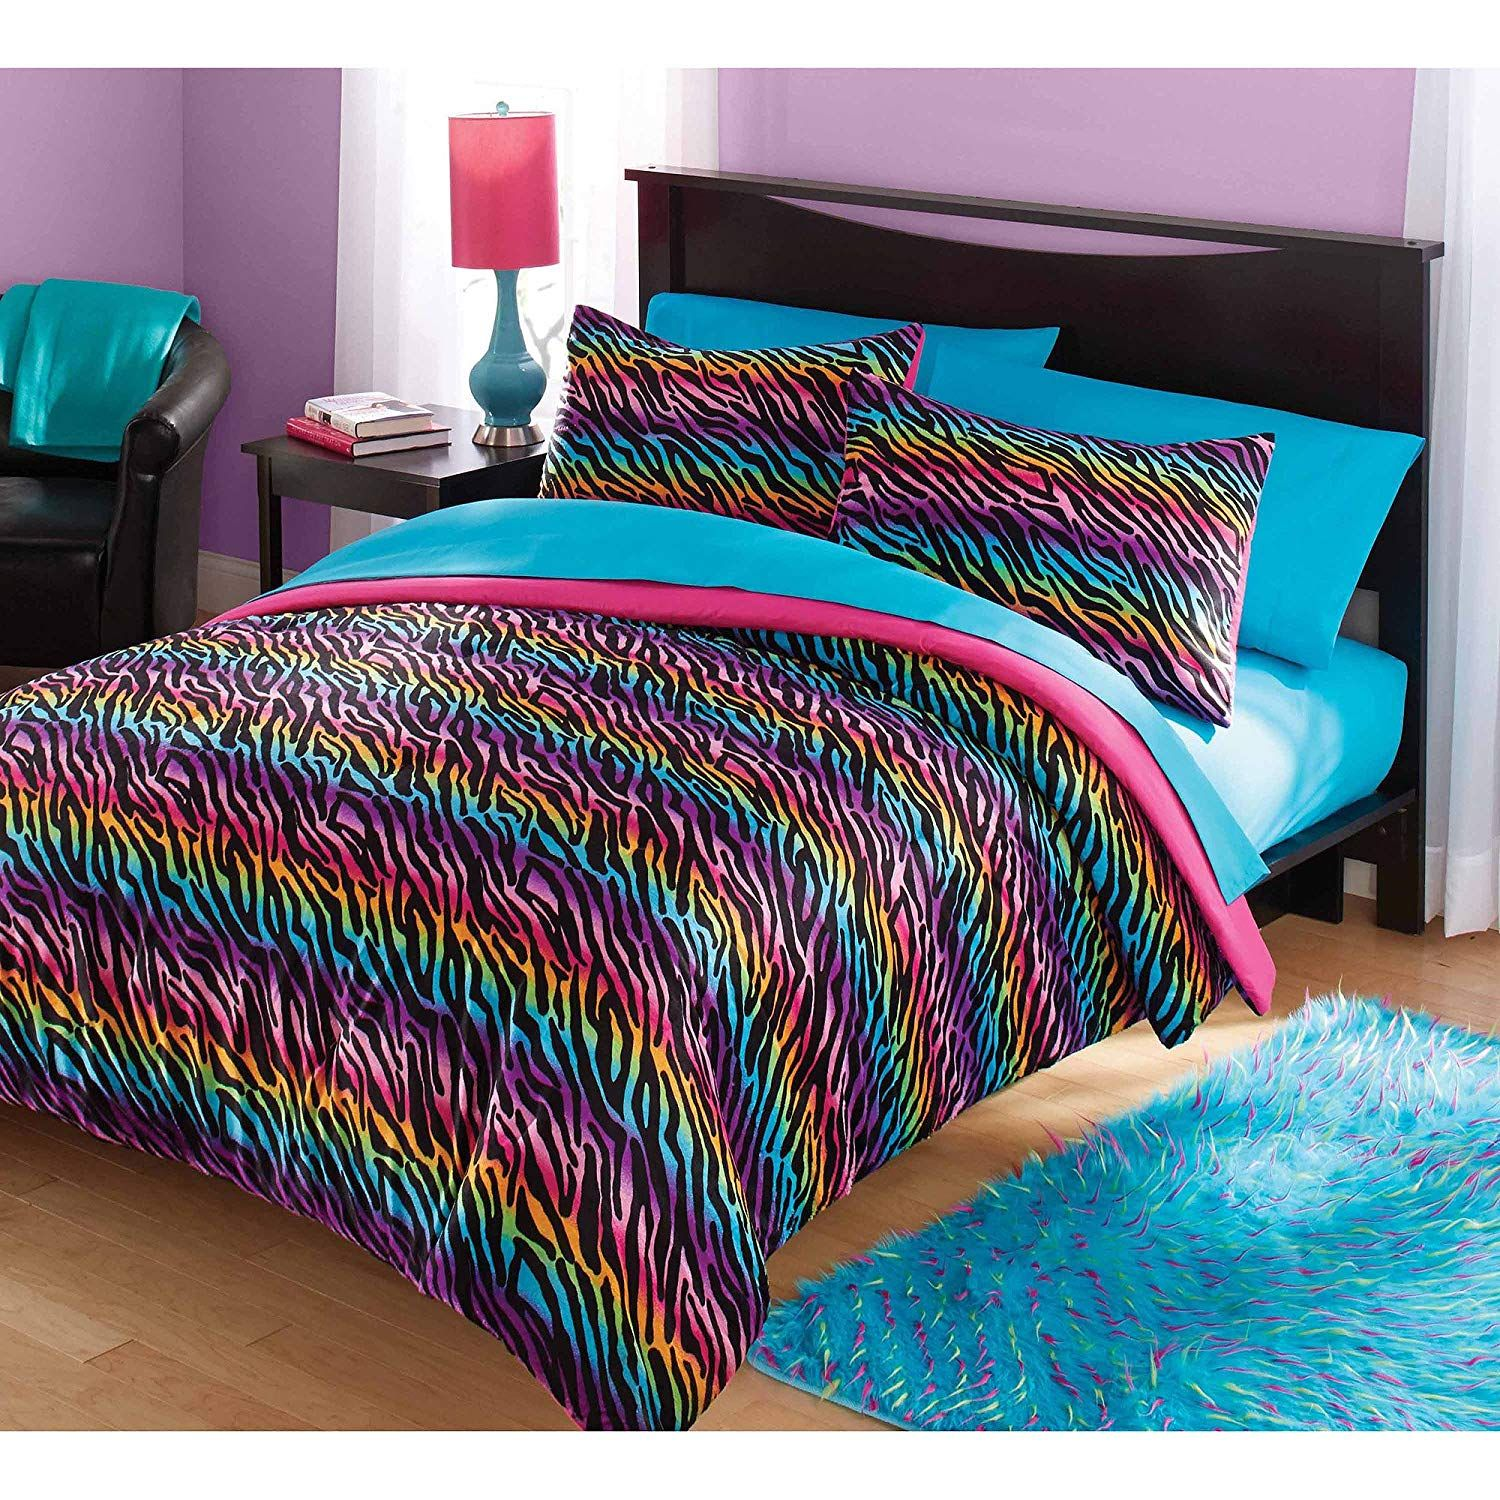 Girls Twin Zebra Rainbow Comforter Set. Includes Comforter and 1 Sham. This Gorgeous Twin Comforter Set Will Suit Your Teen, Girls and Adults Too